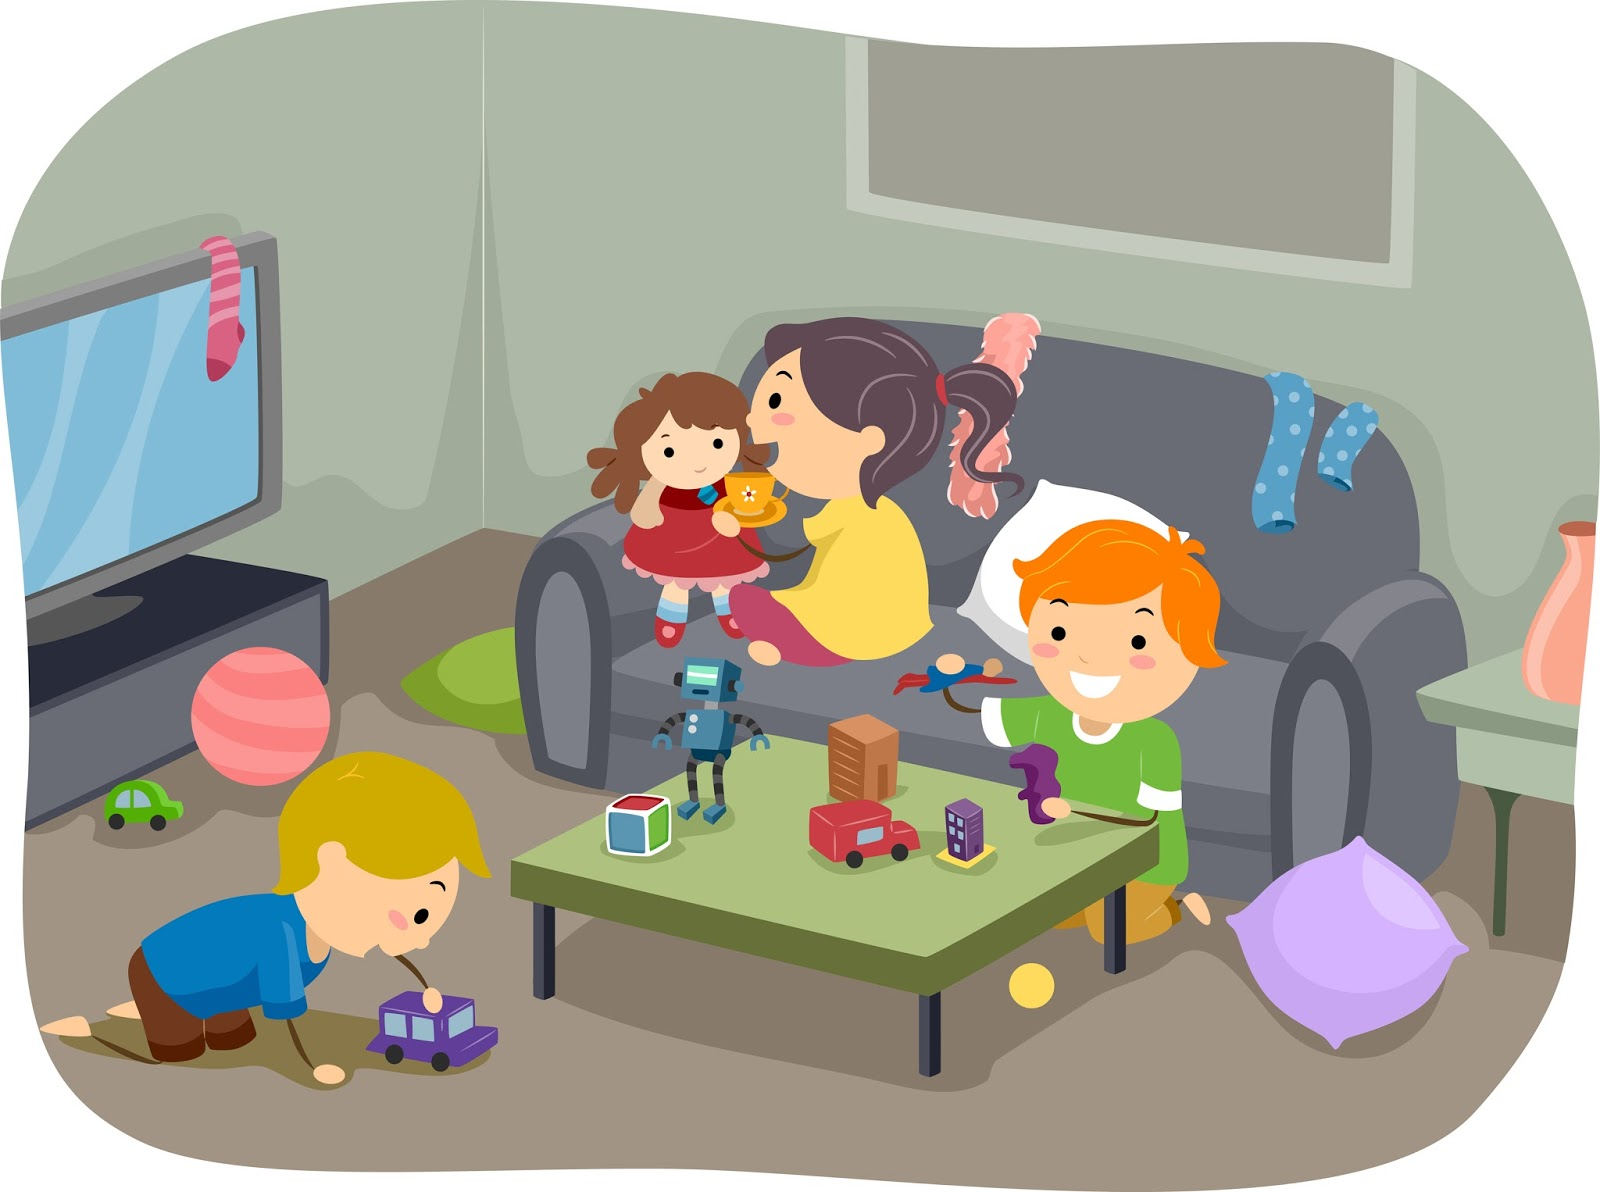 Kids playing at home clipart.